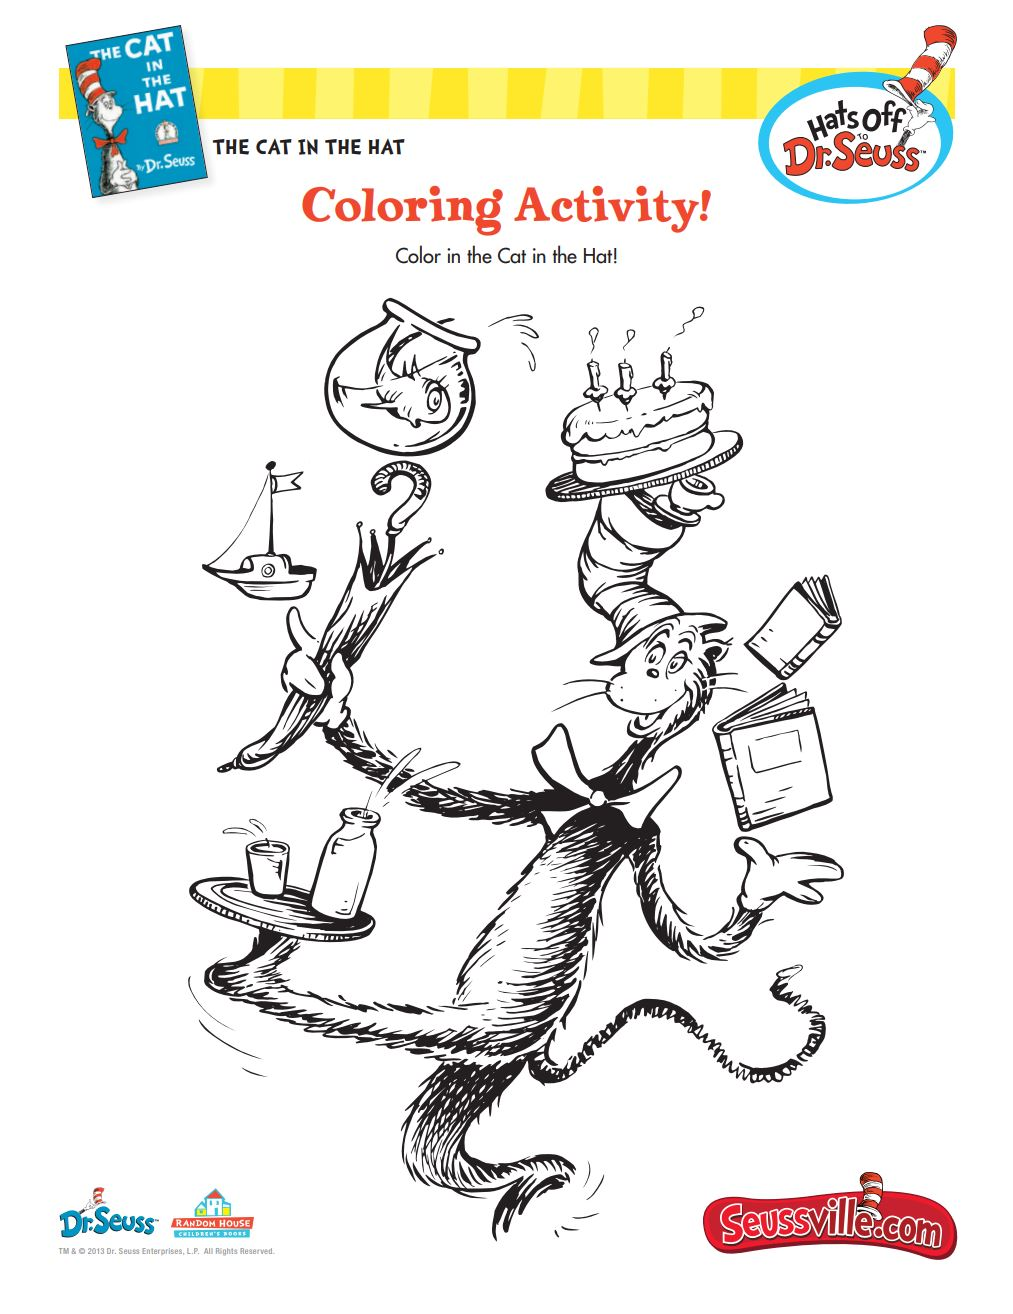 The Cat in the Hat Coloring Activity